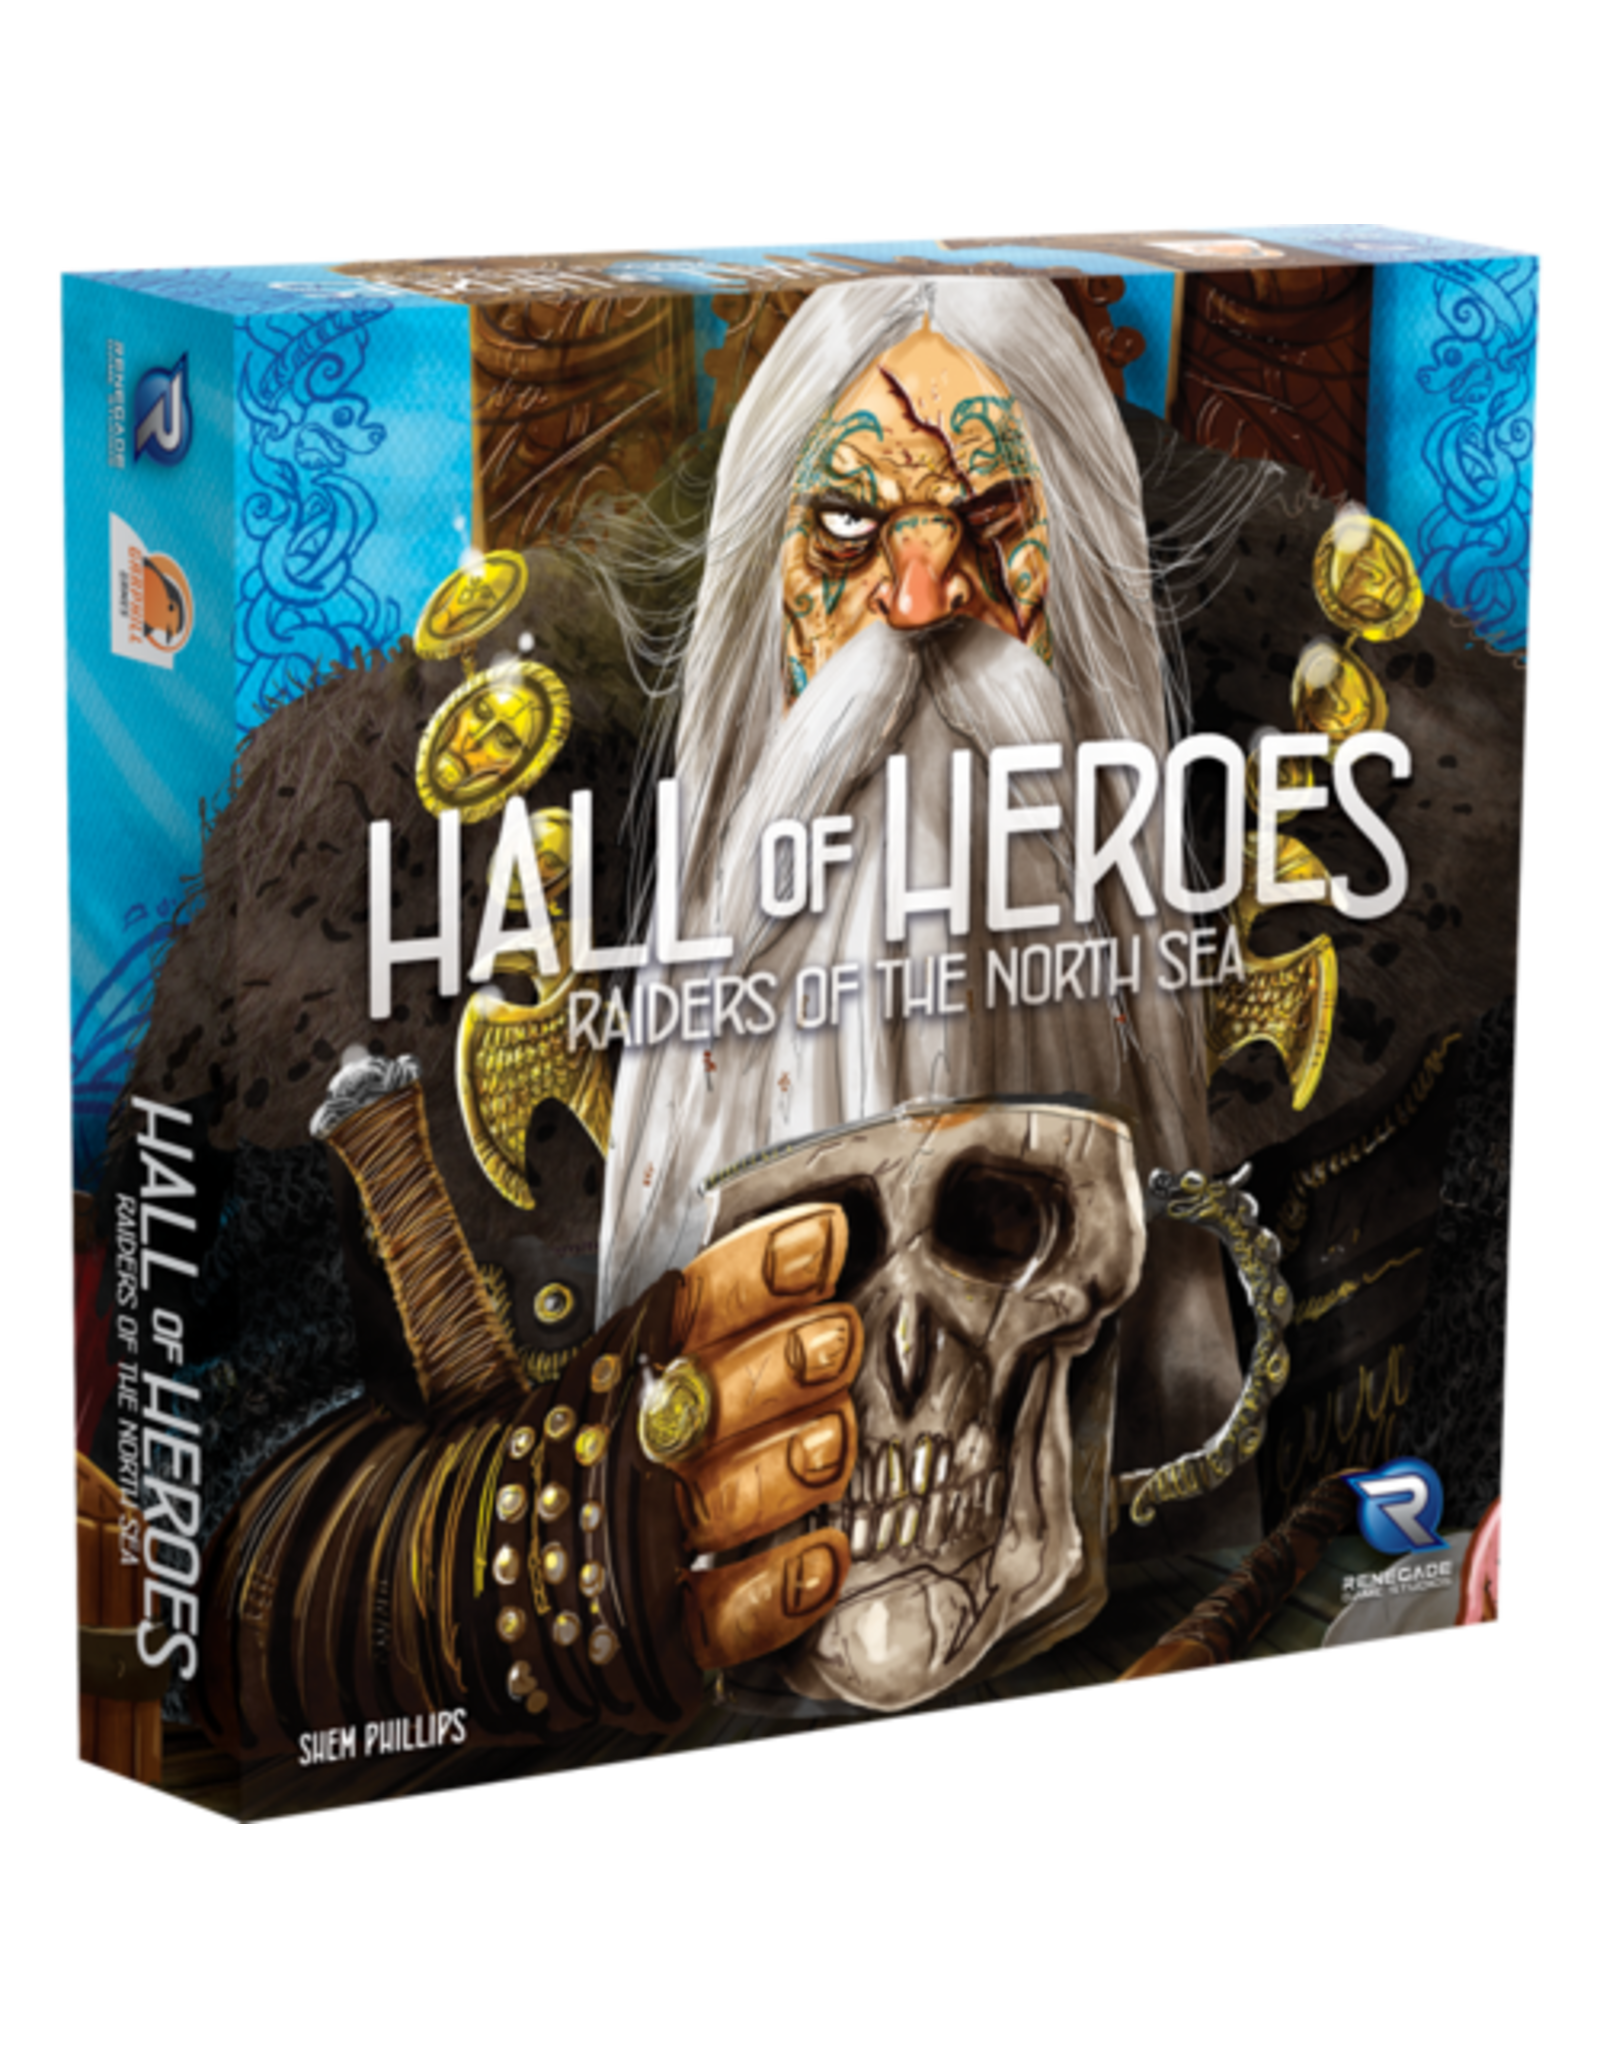 Renegade Raiders of the North Sea: Hall of Heroes